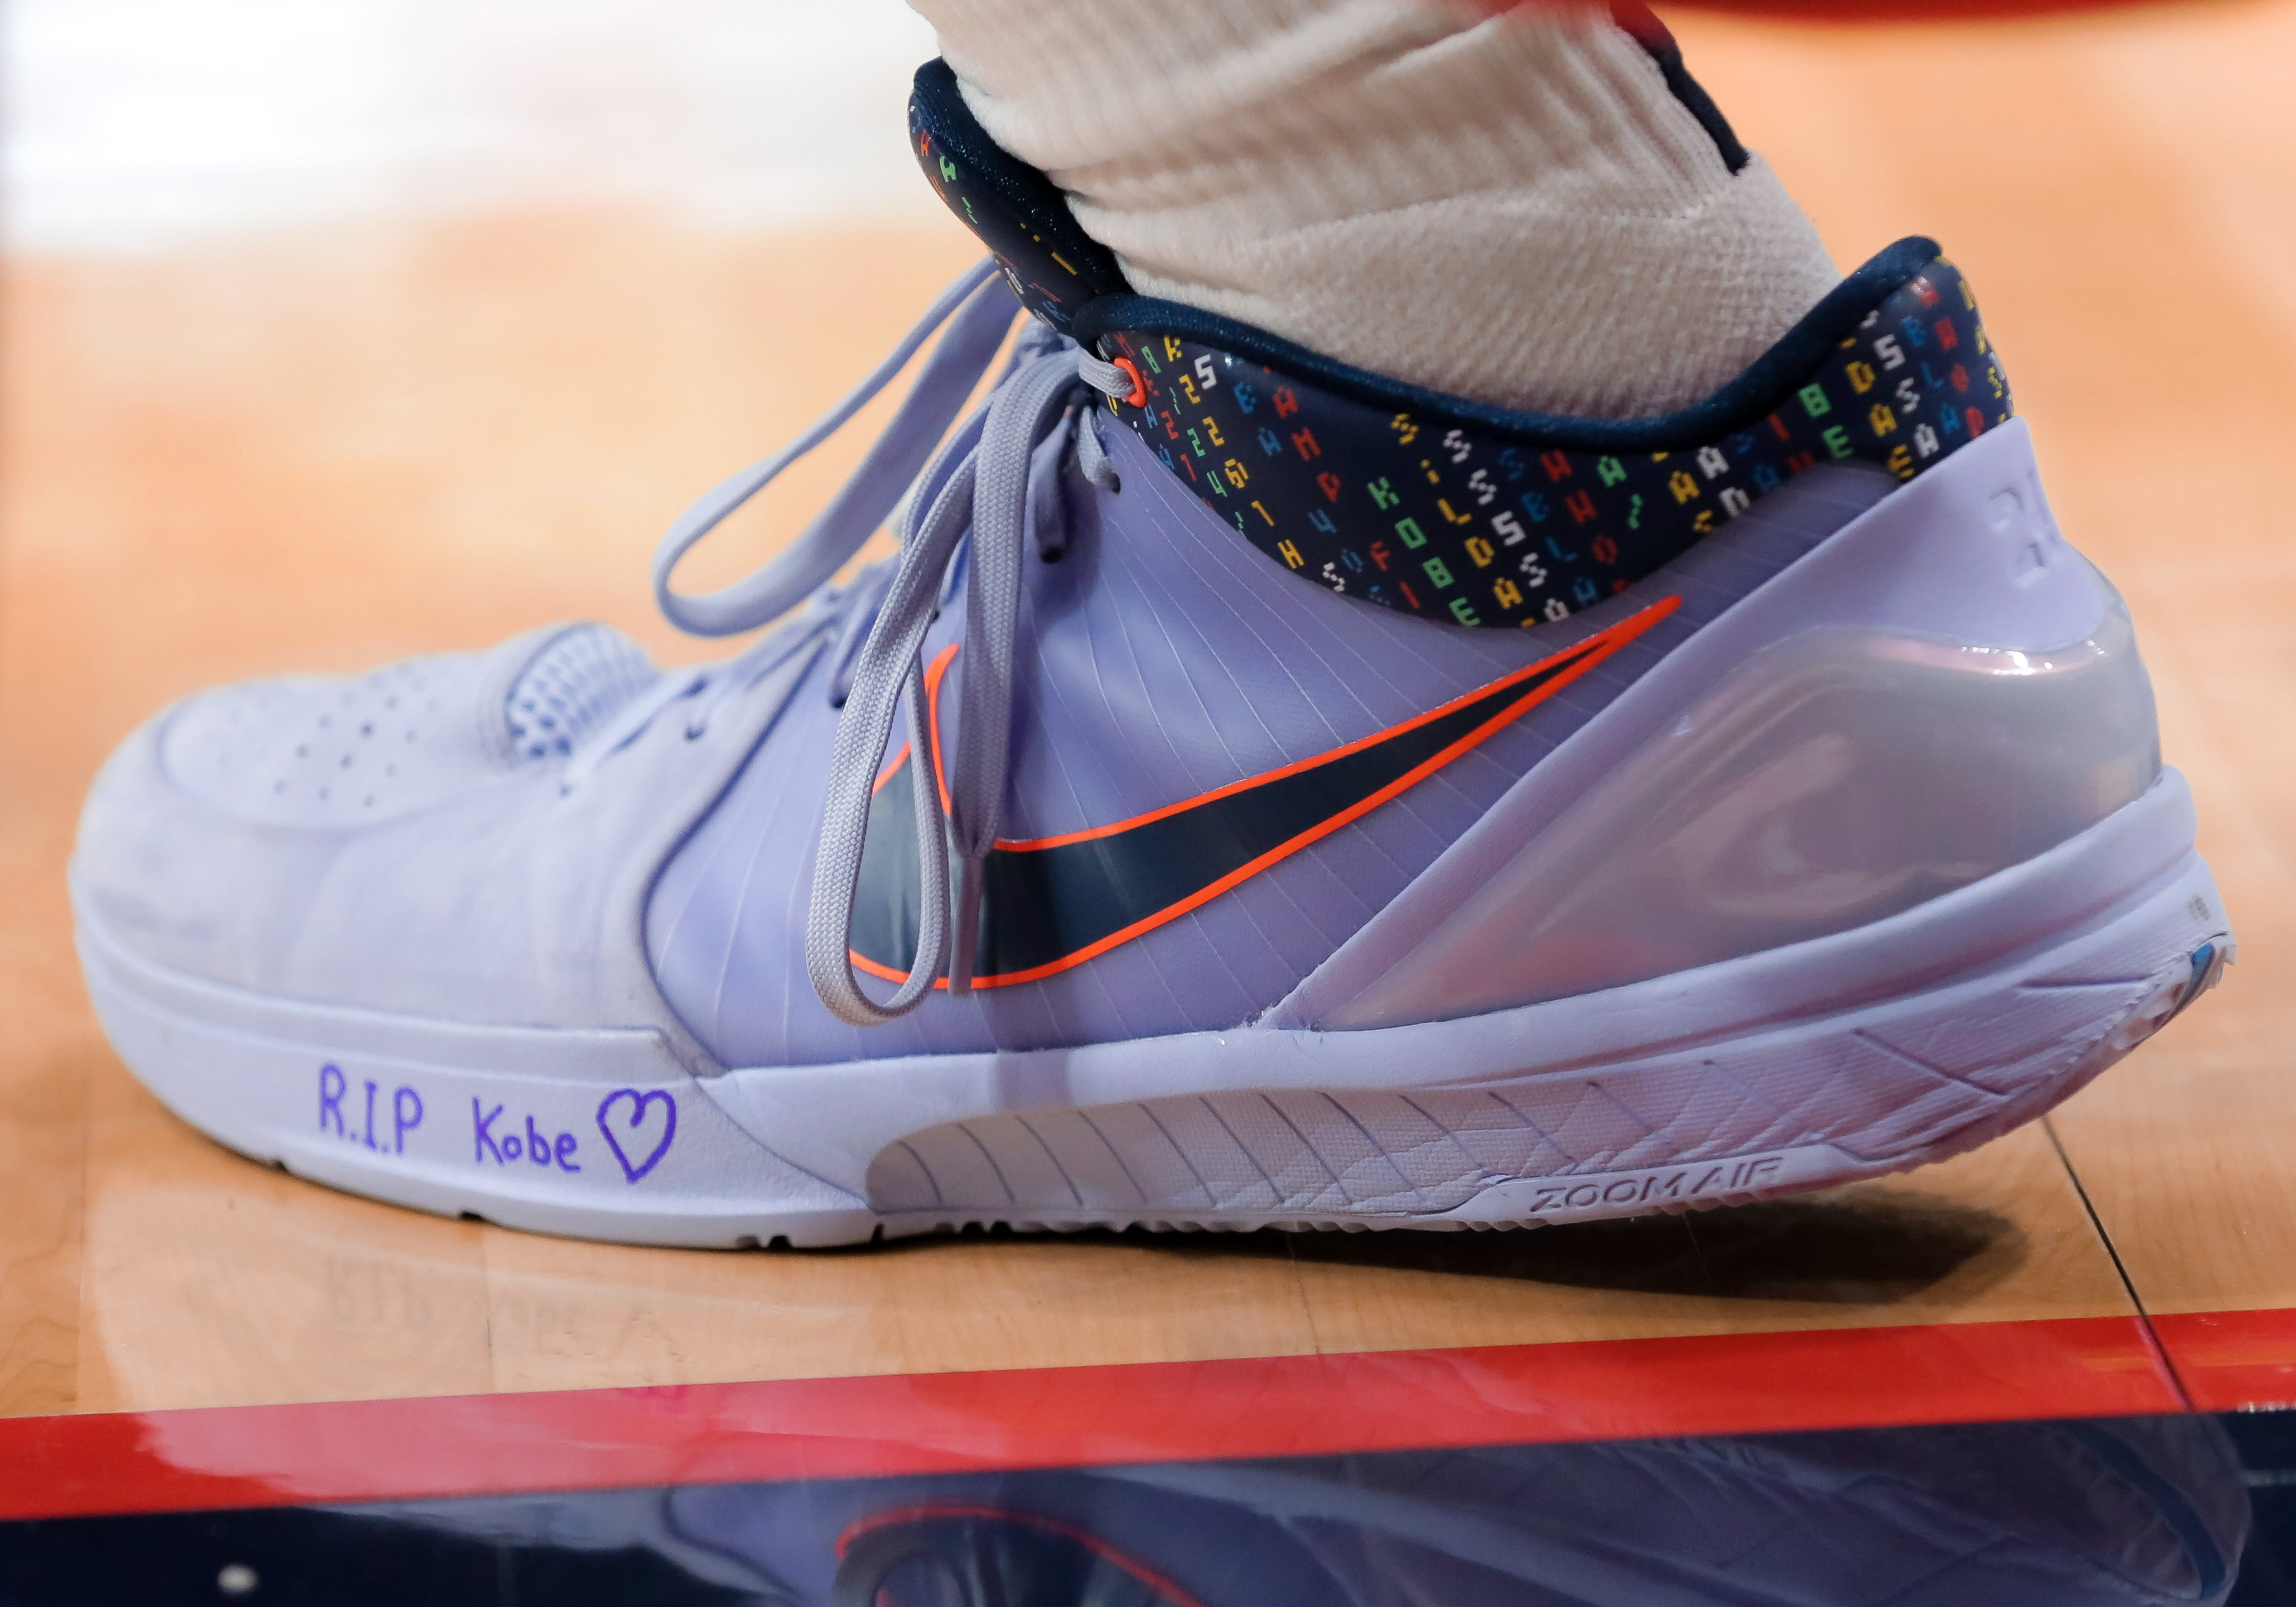 Players scribbled tribute messages to Bryant on their sneakers before stepping on the court Sunday